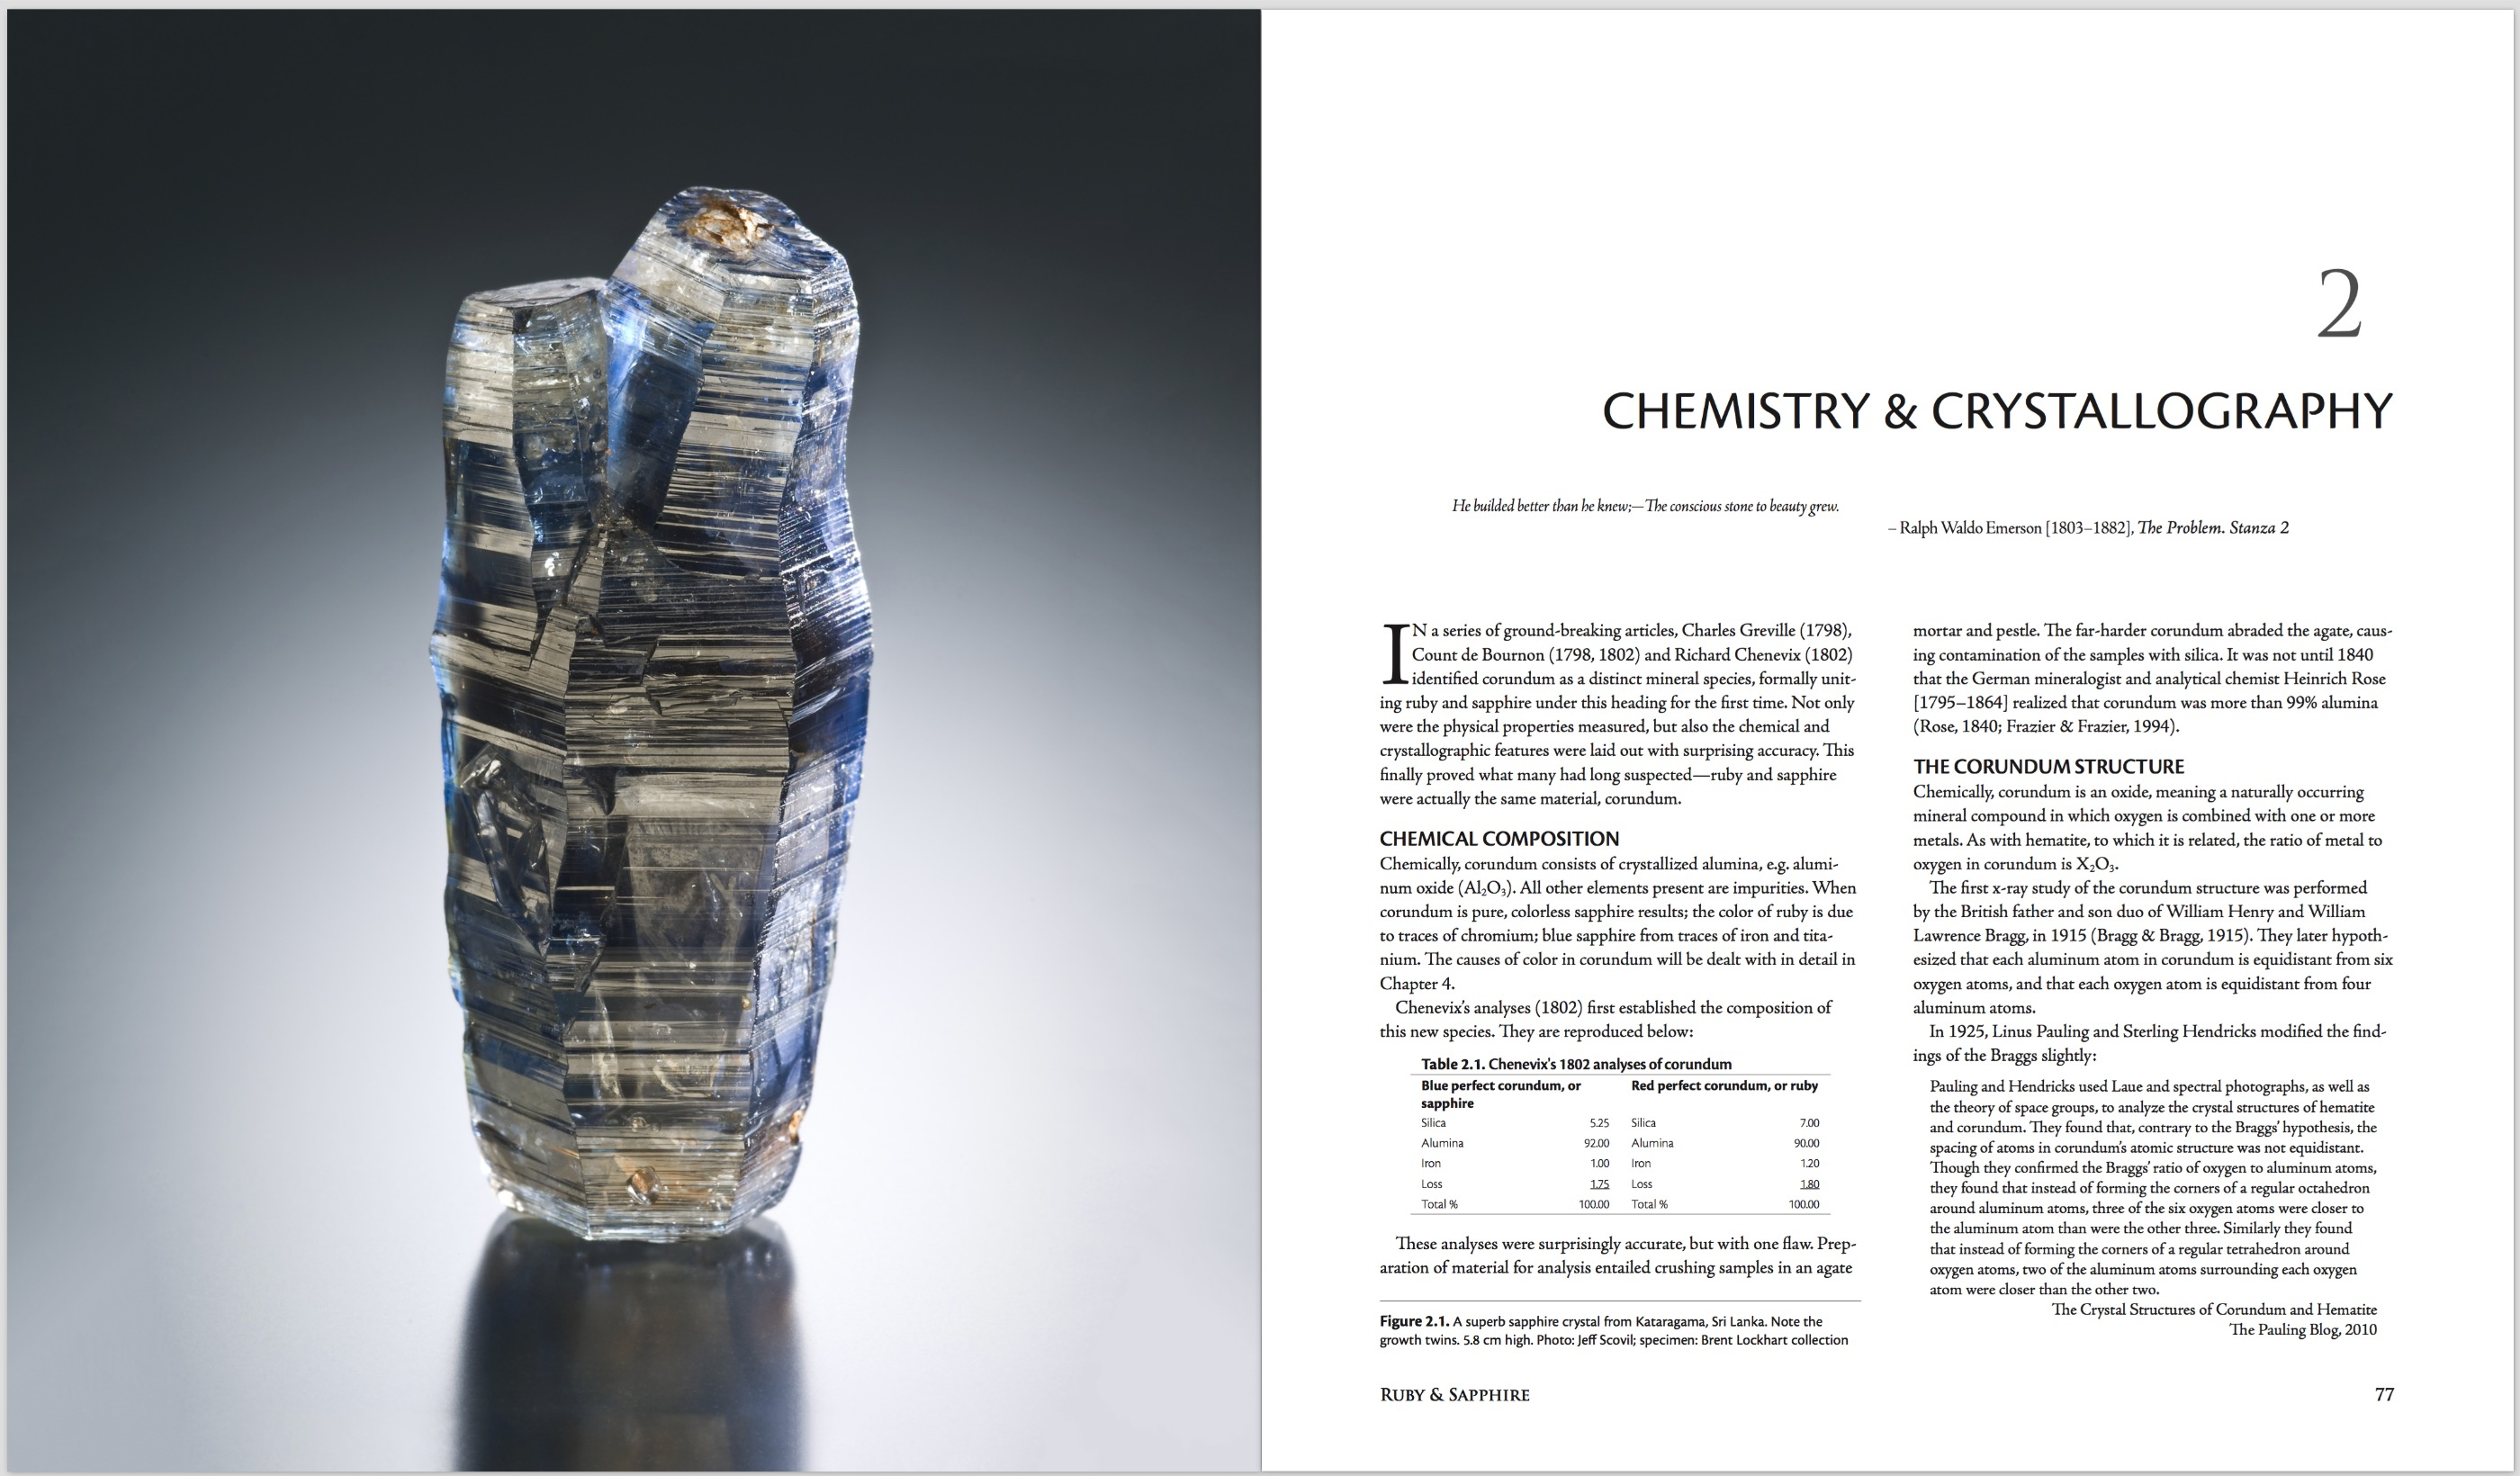 Ruby & Sapphire: A Gemologist's Guide – Chemistry & Crystallography